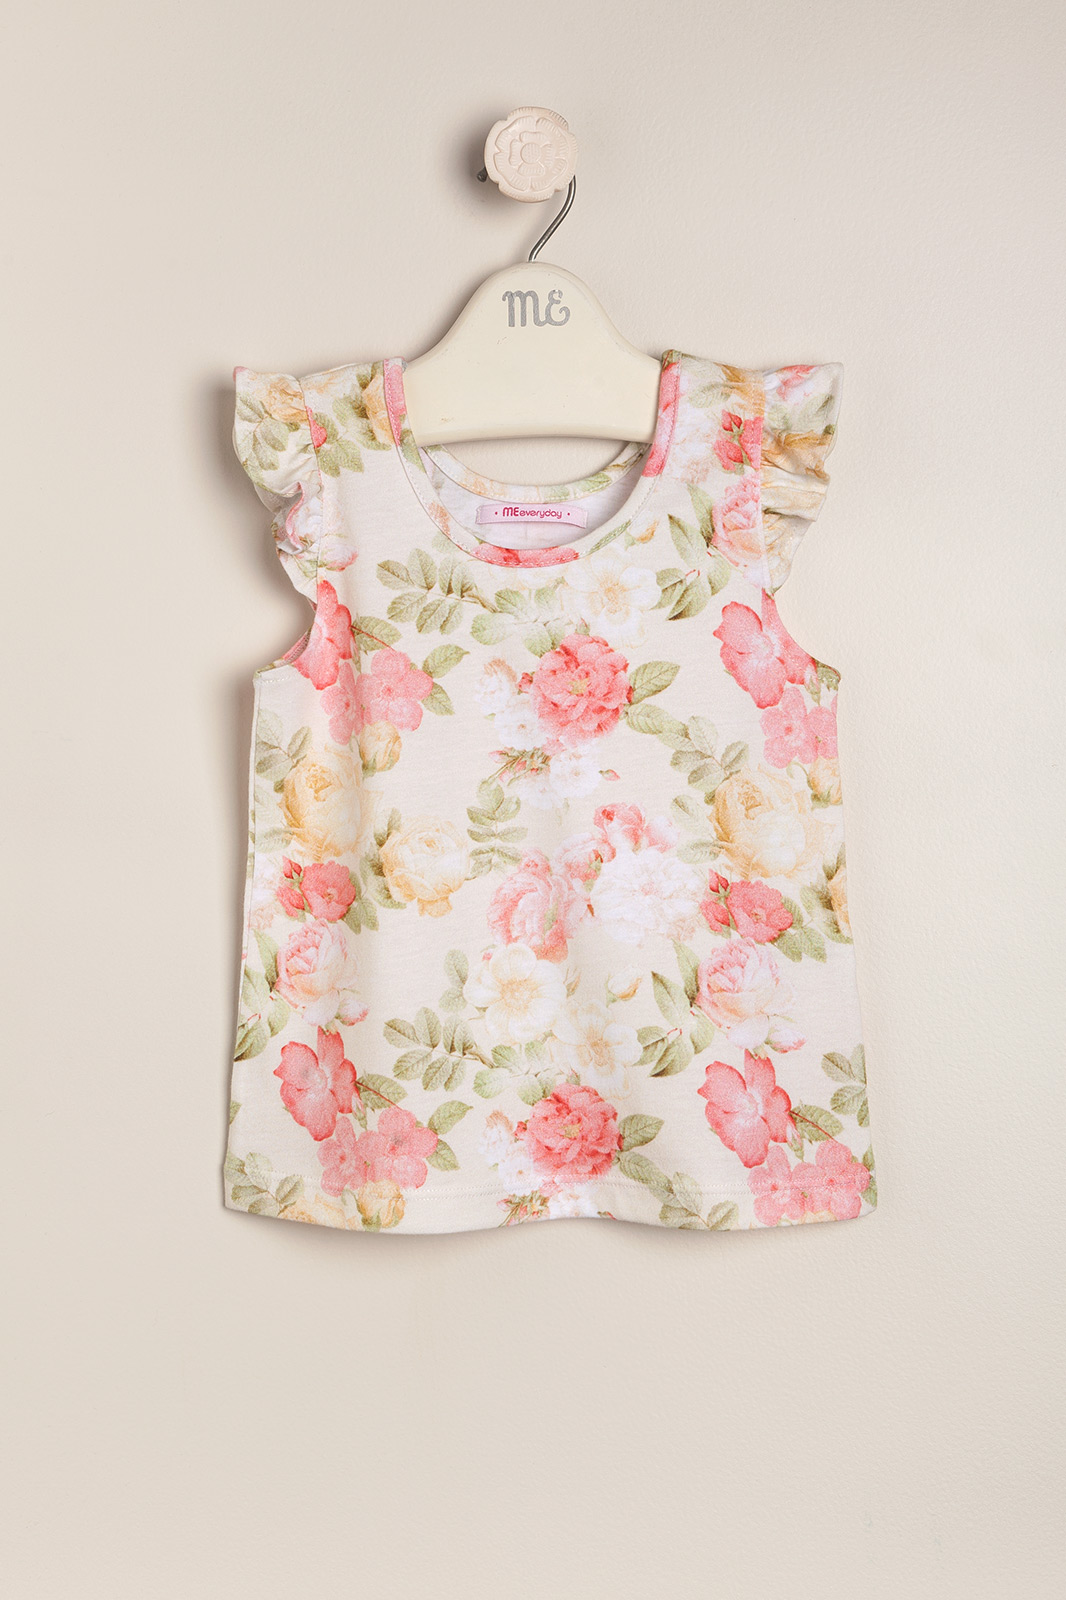 Musculosa liberty Lucy